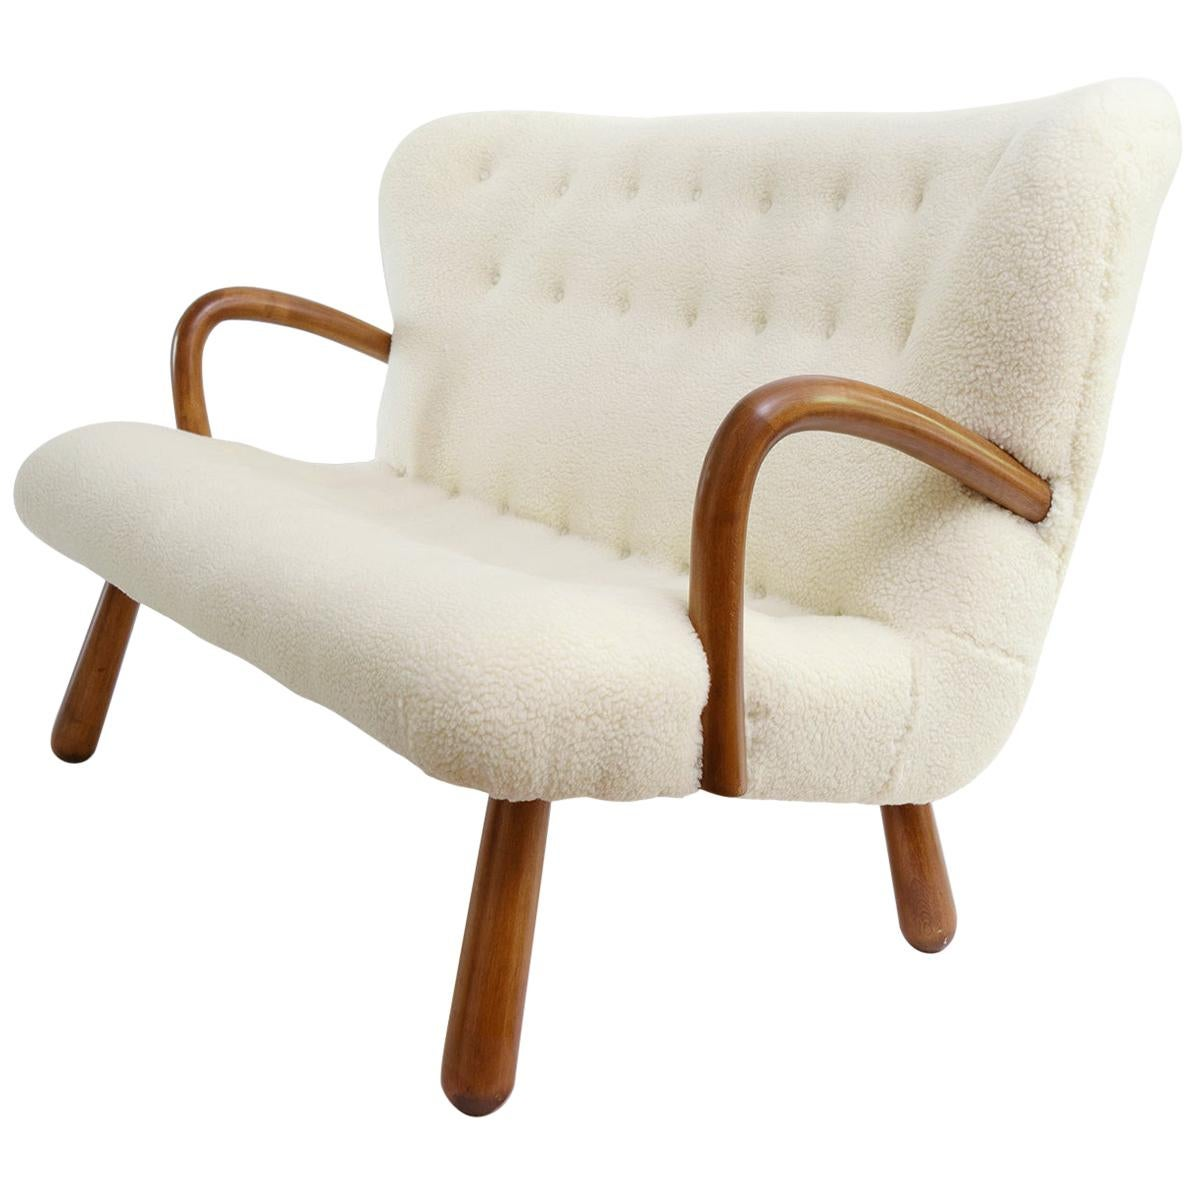 Philip Arctander 'Attributed' Scandinavian Modern Settee in Faux Sheepskin